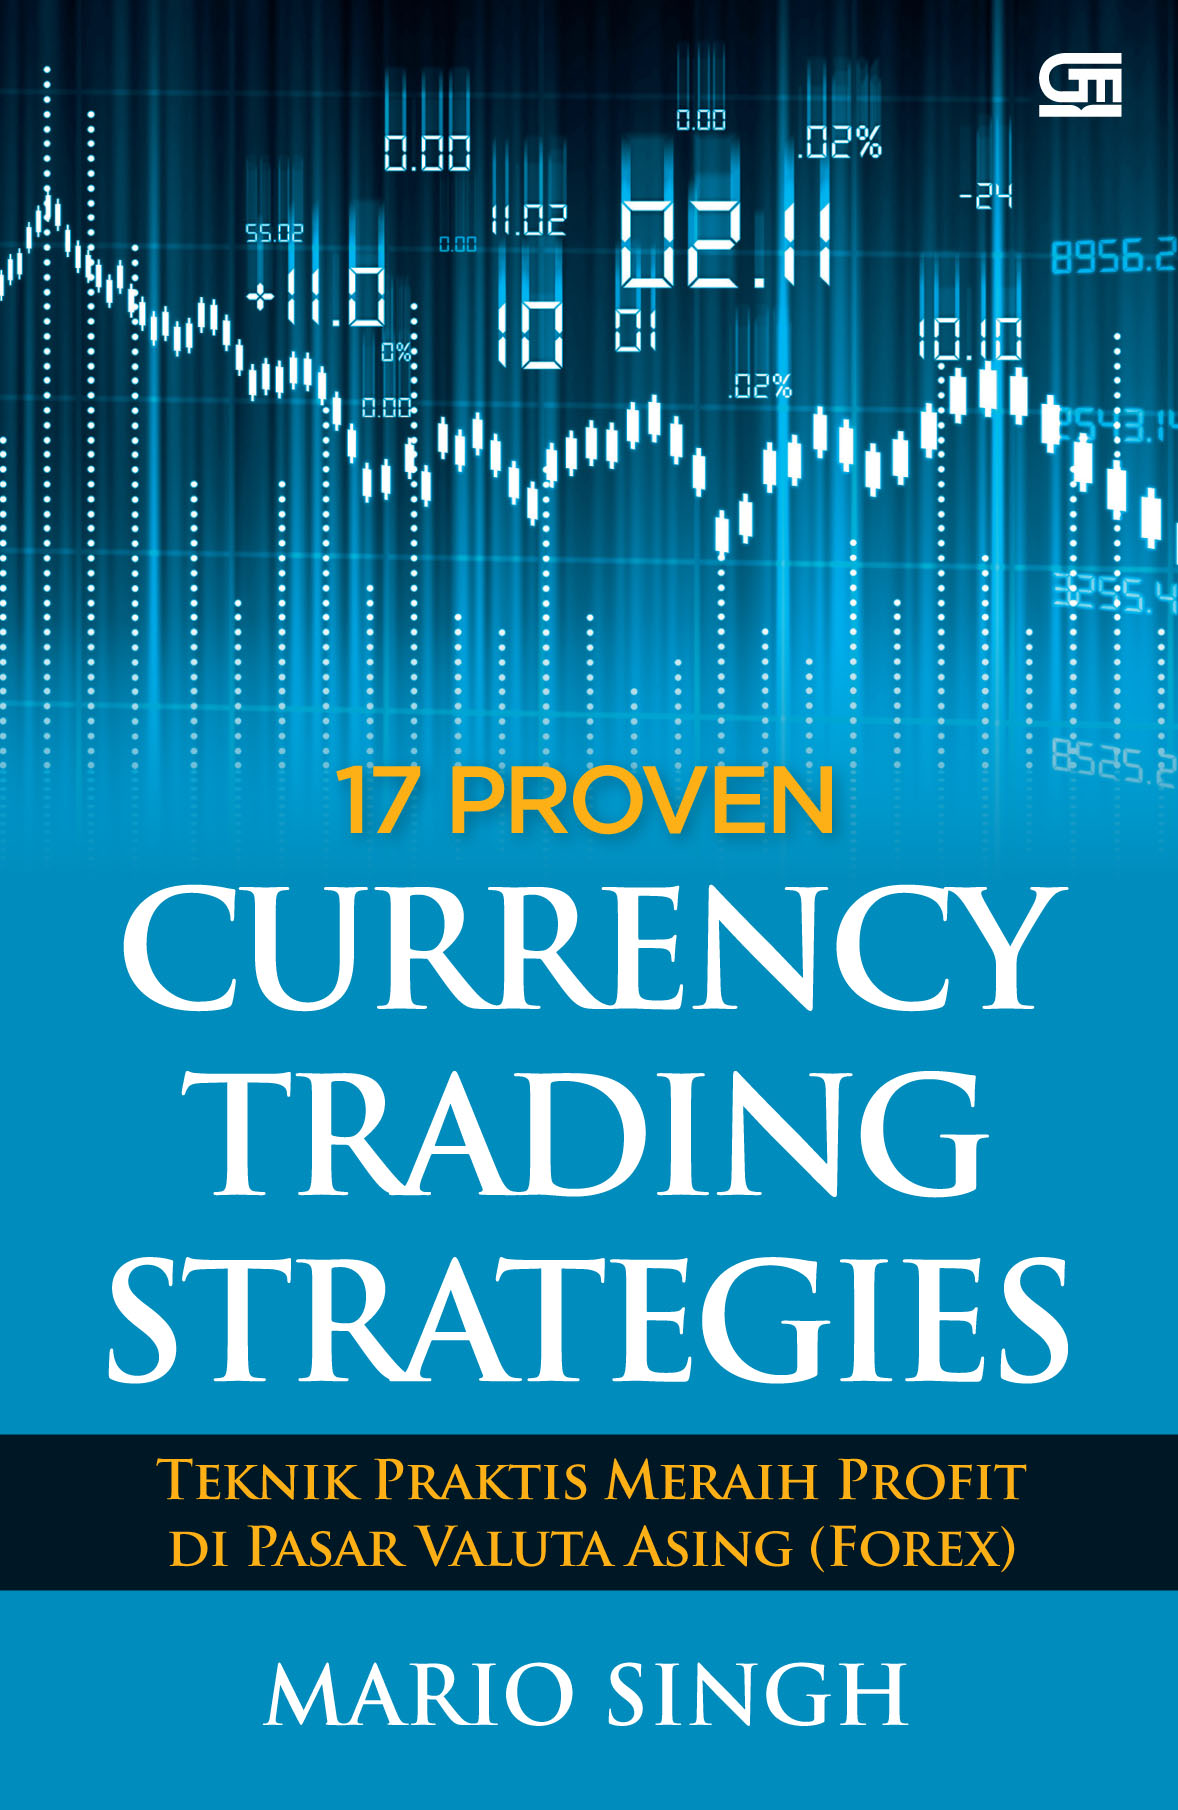 17 Proven Currency Trading Strategies (Cover baru)